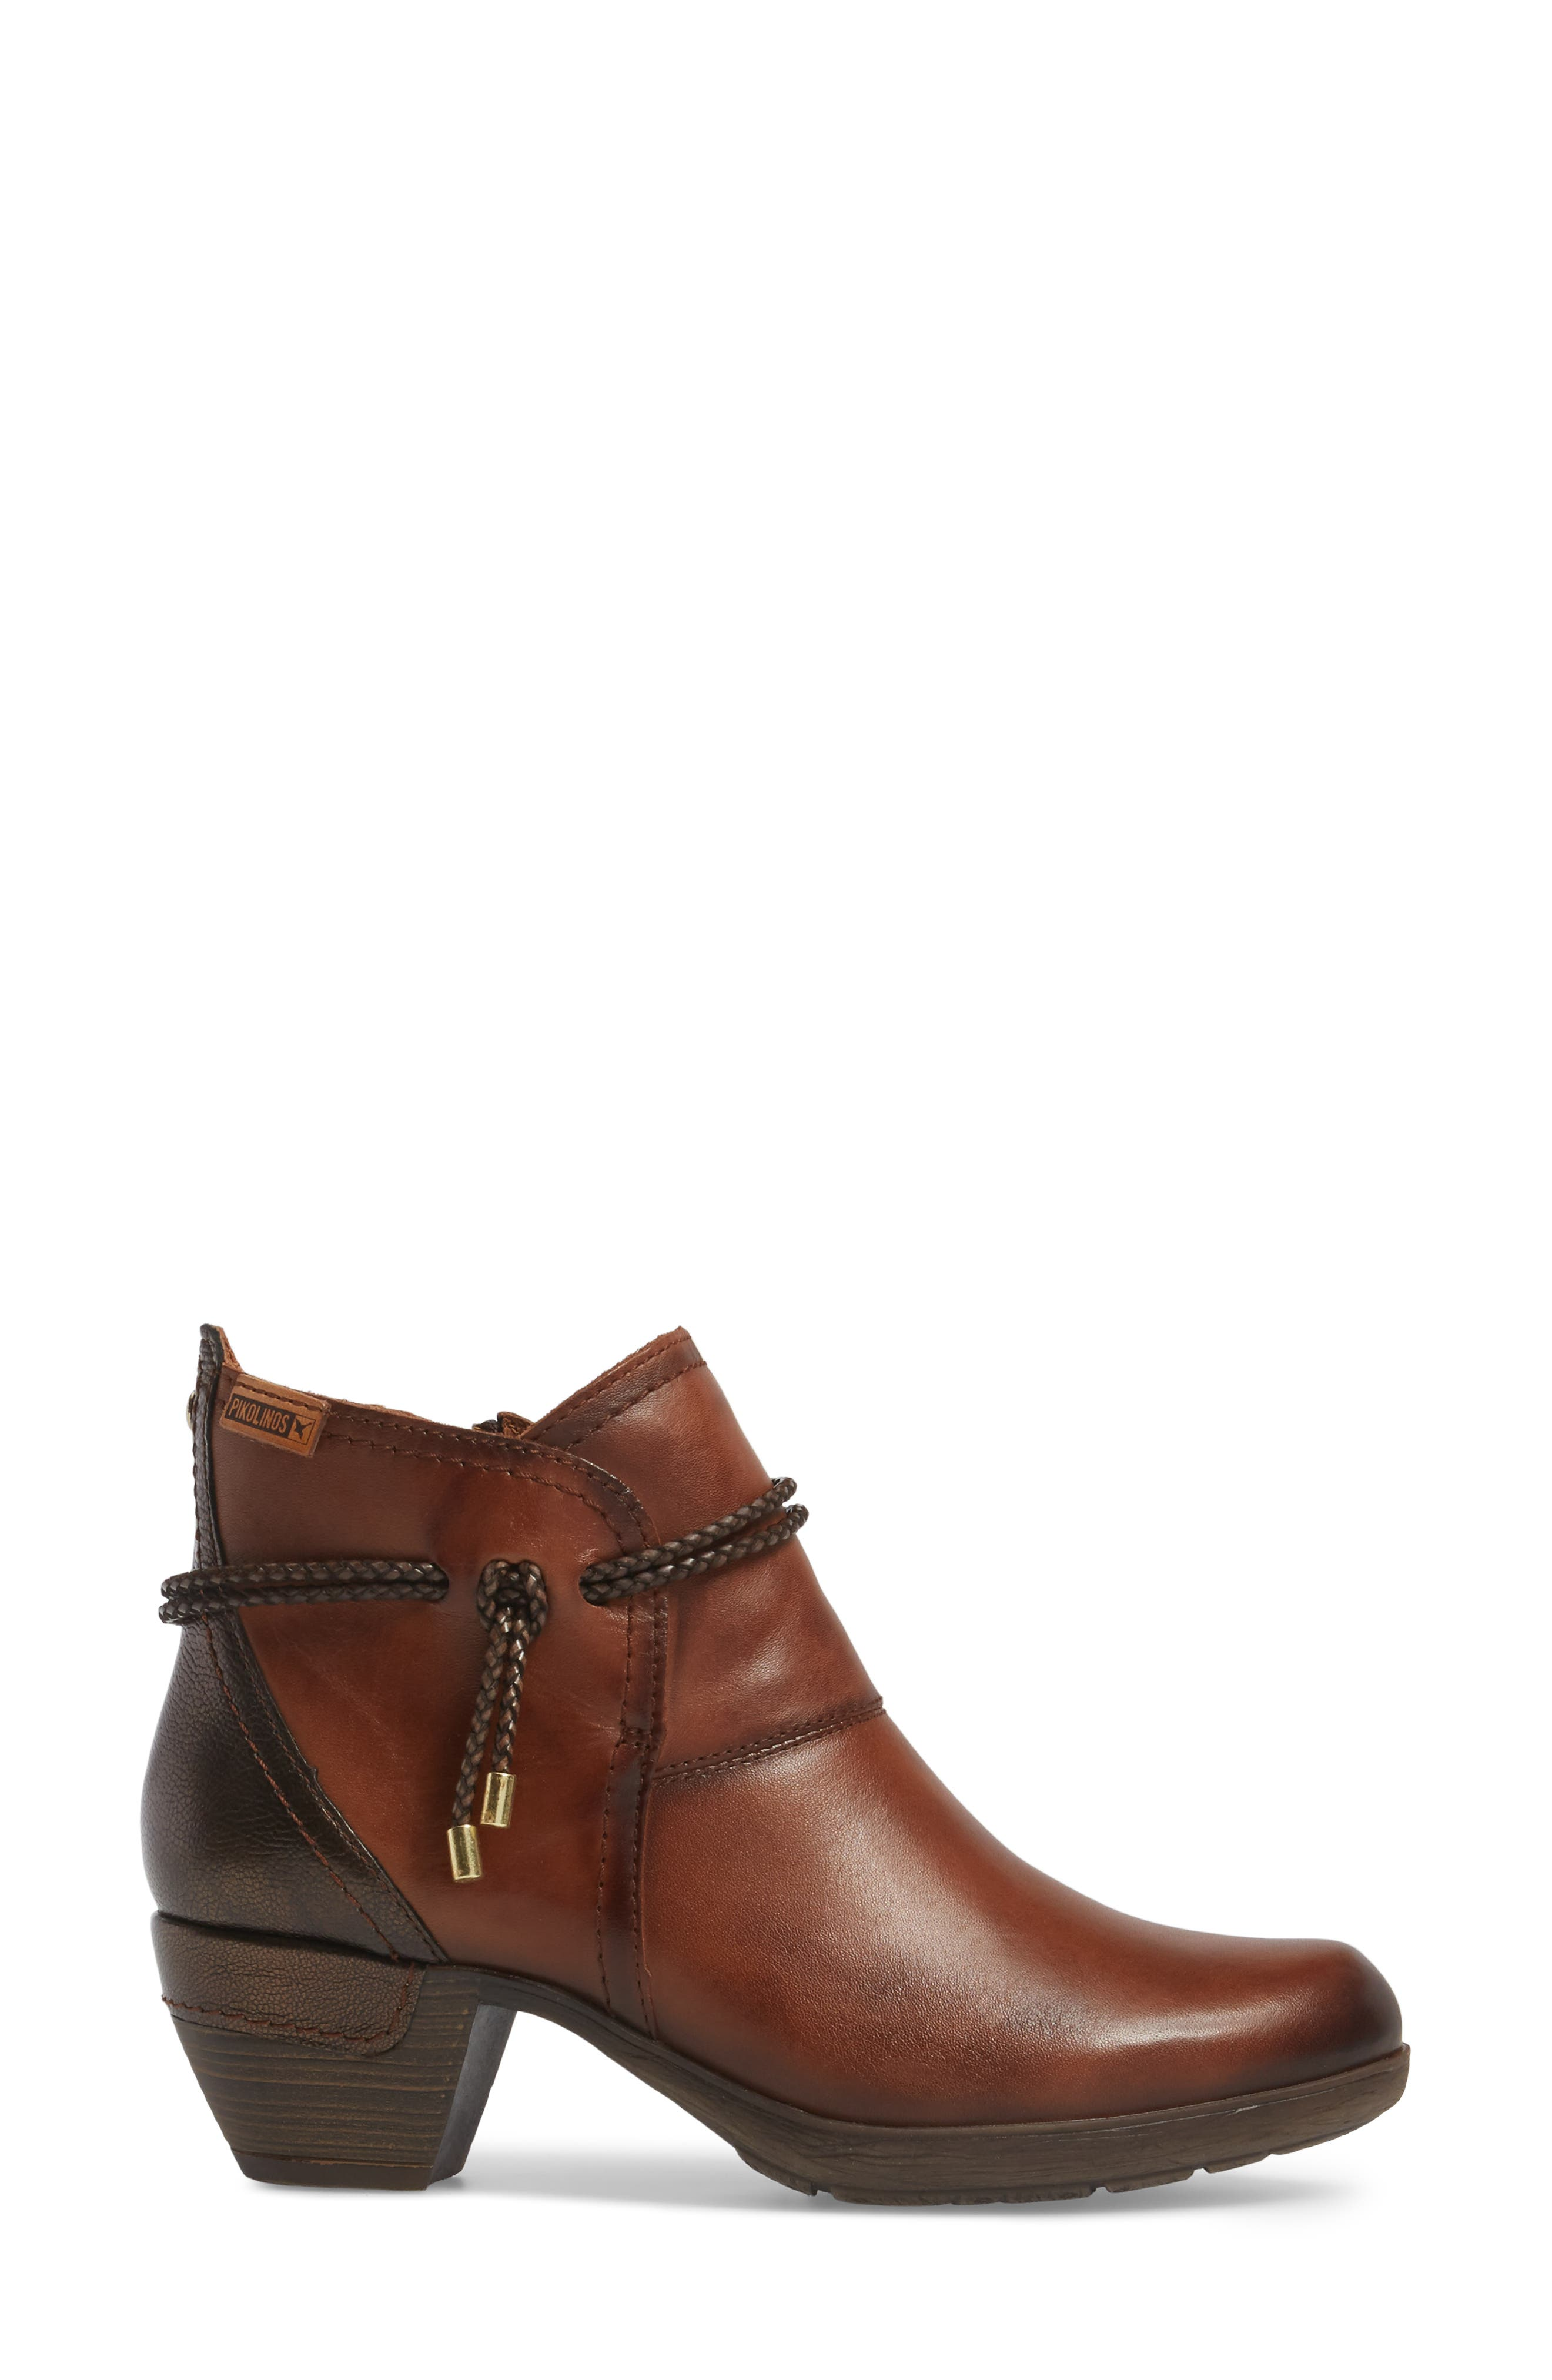 'Rotterdam' Braid Strap Bootie,                             Alternate thumbnail 3, color,                             CUERO BROWN OLMO LEATHER